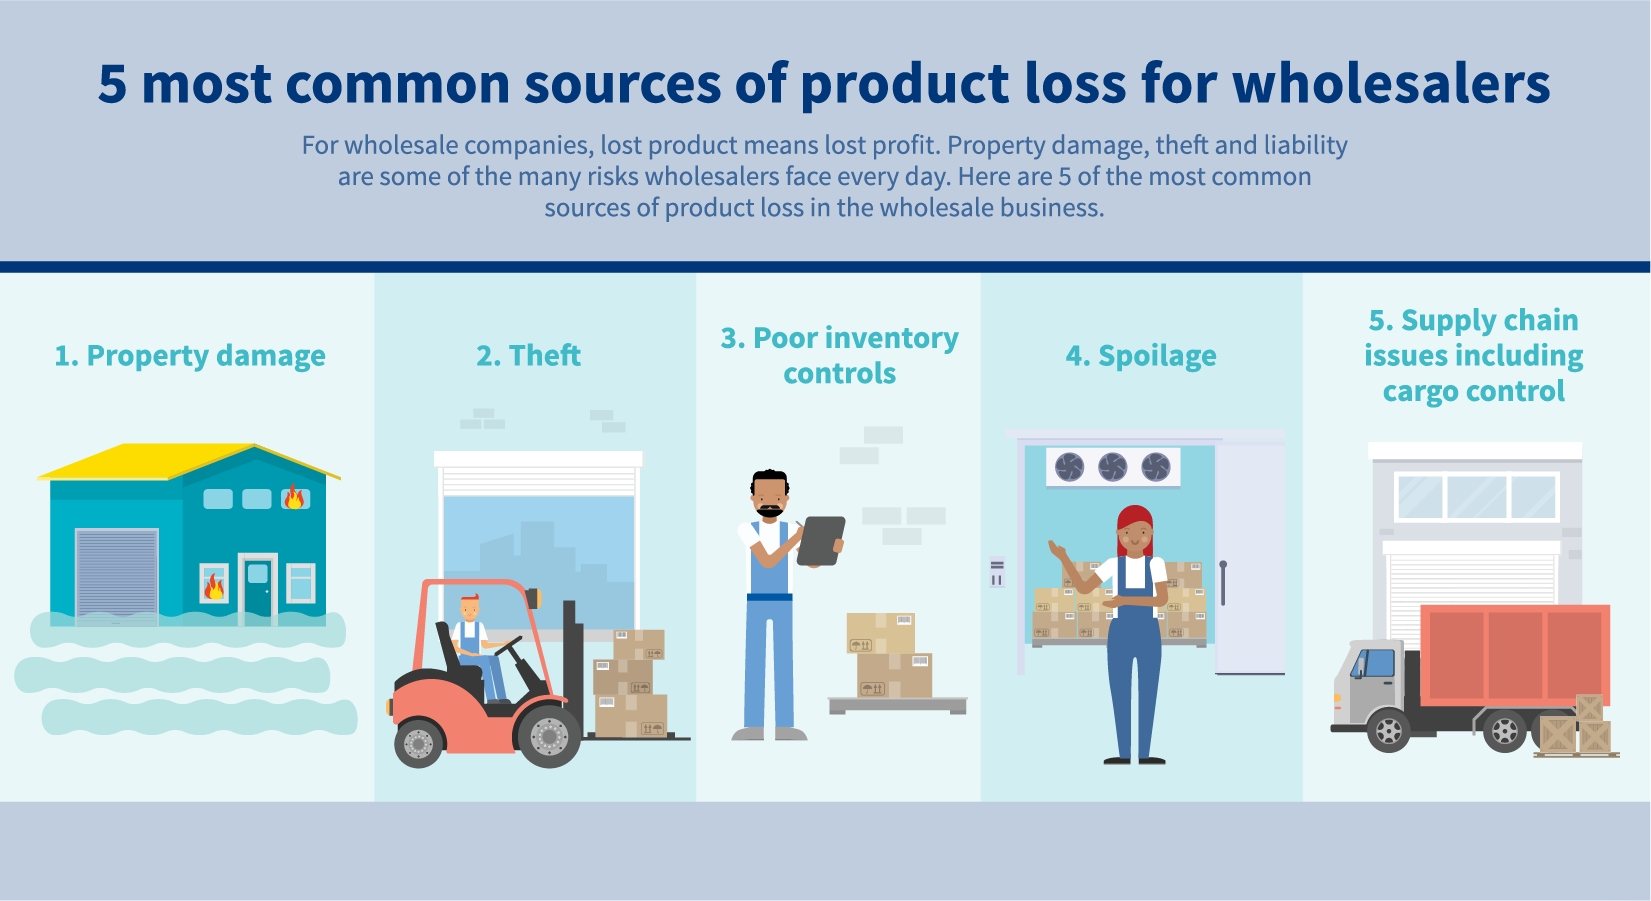 Image illustrates five most common sources of product loss for wholesalers including: Property damage, theft, poor inventory controls, spoilage and supply chain issues including cargo control.